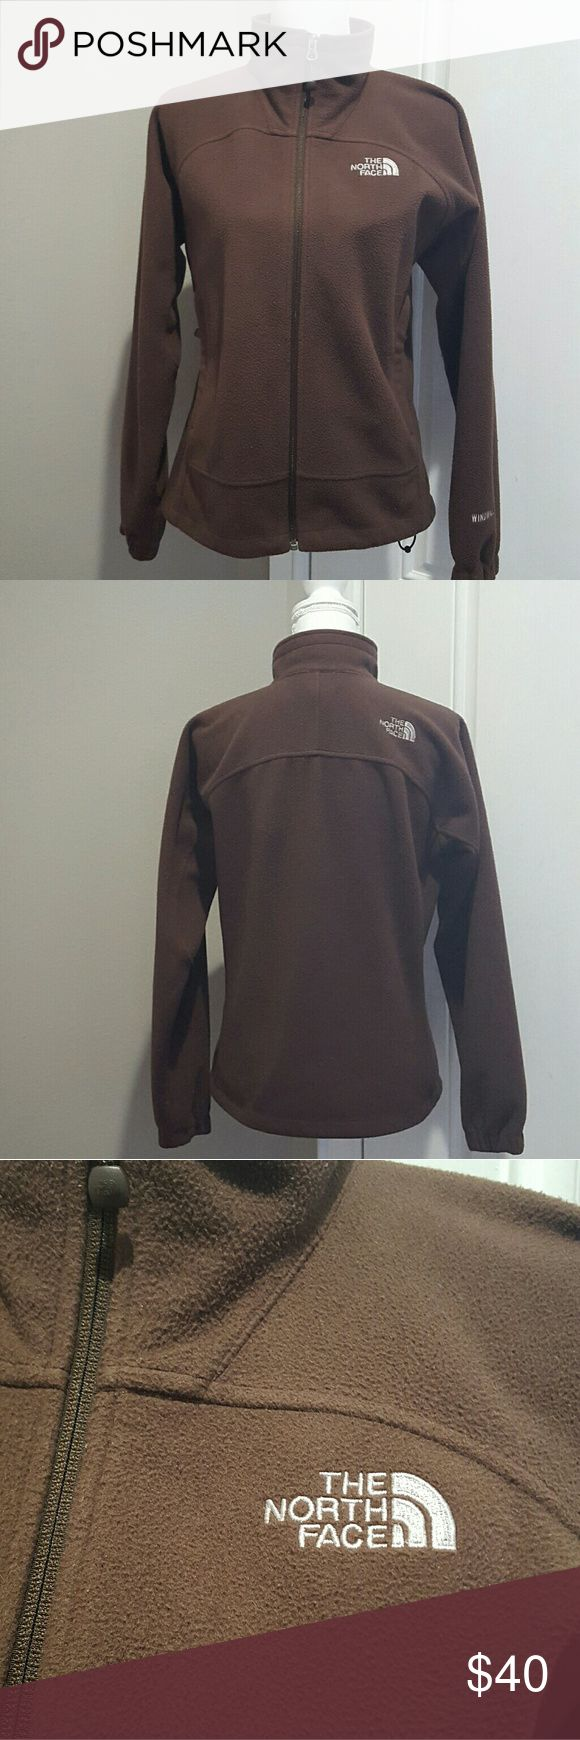 Women's brown North Face fleece jacket, medium Women's brown North Face fleece jacket, size medium. no stains or tares. Does have some fuzzies, as seen in up close picture. The North Face Jackets & Coats